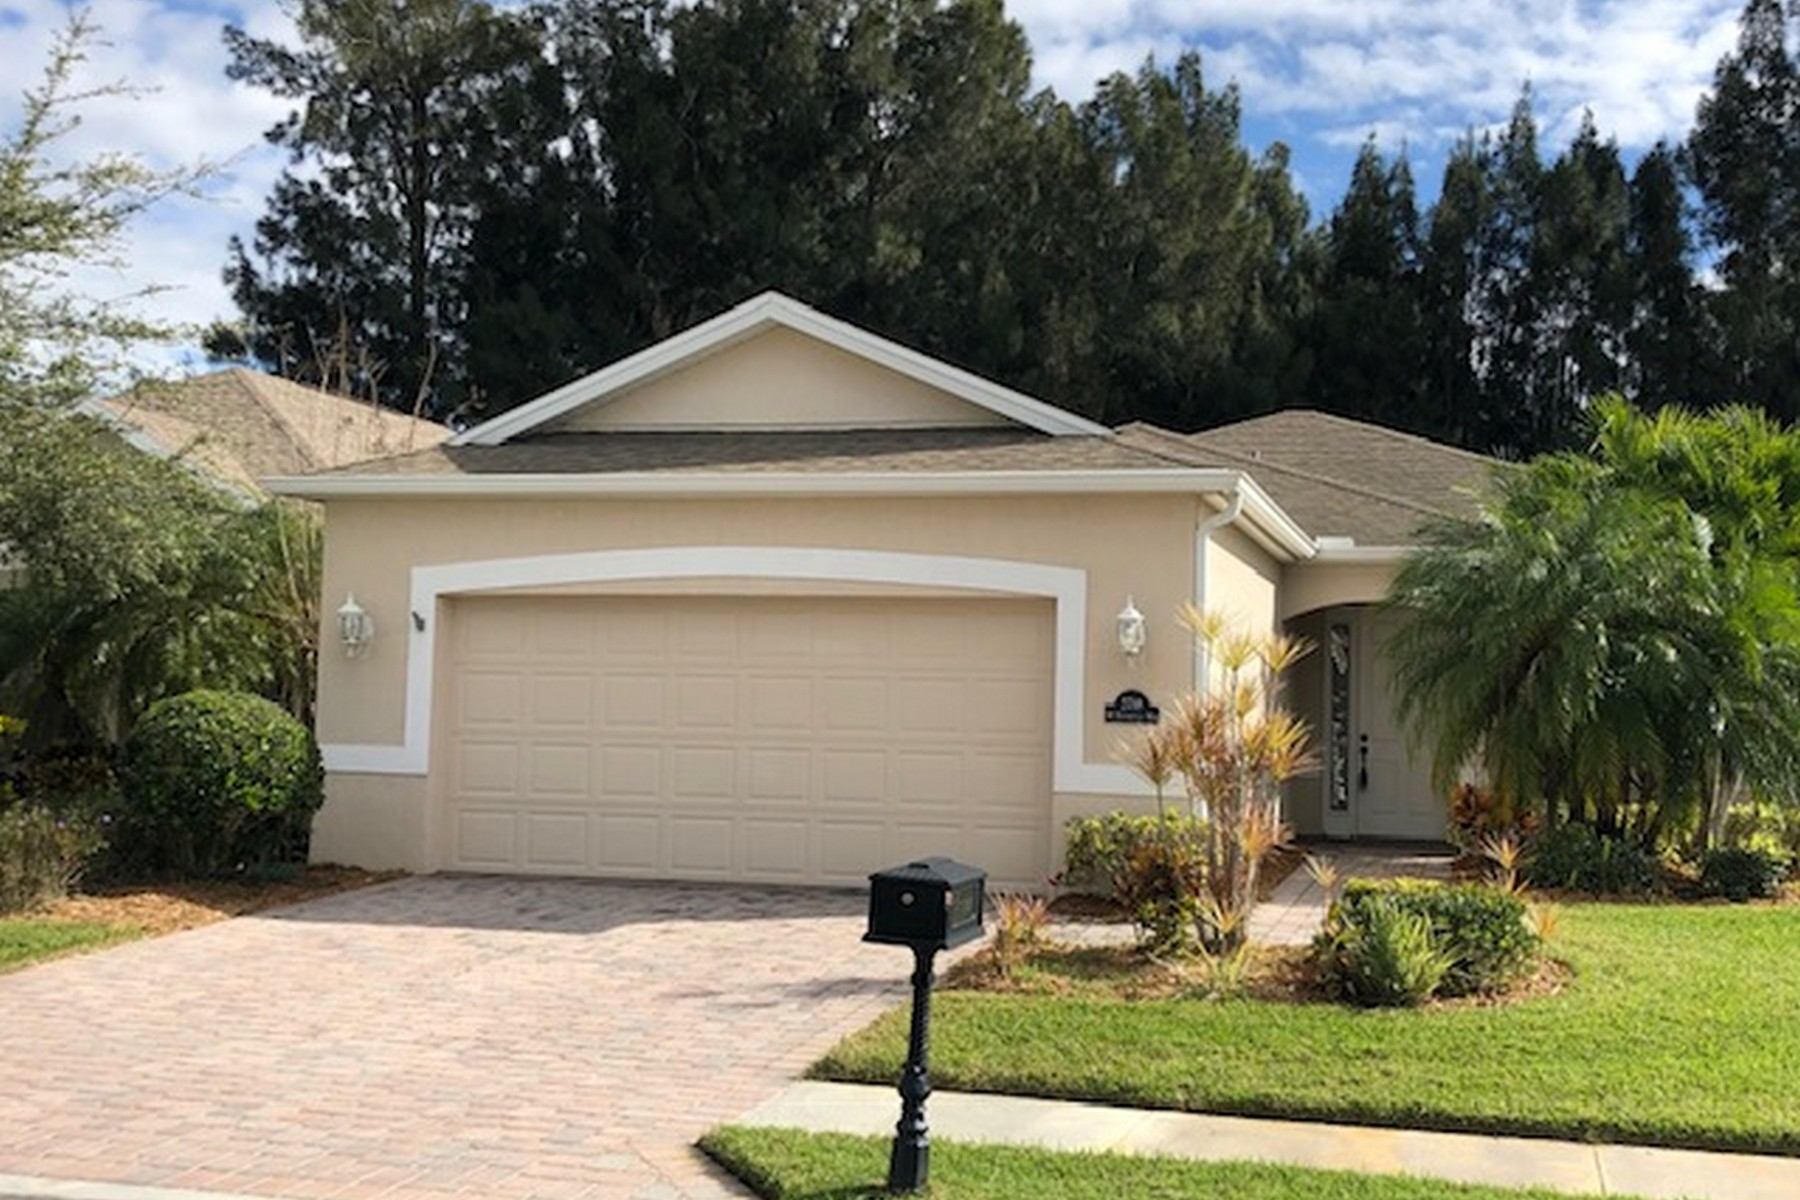 House for Sale at Get Excited About This One 2788 W. Brookfield Way Vero Beach, Florida 32966 United States